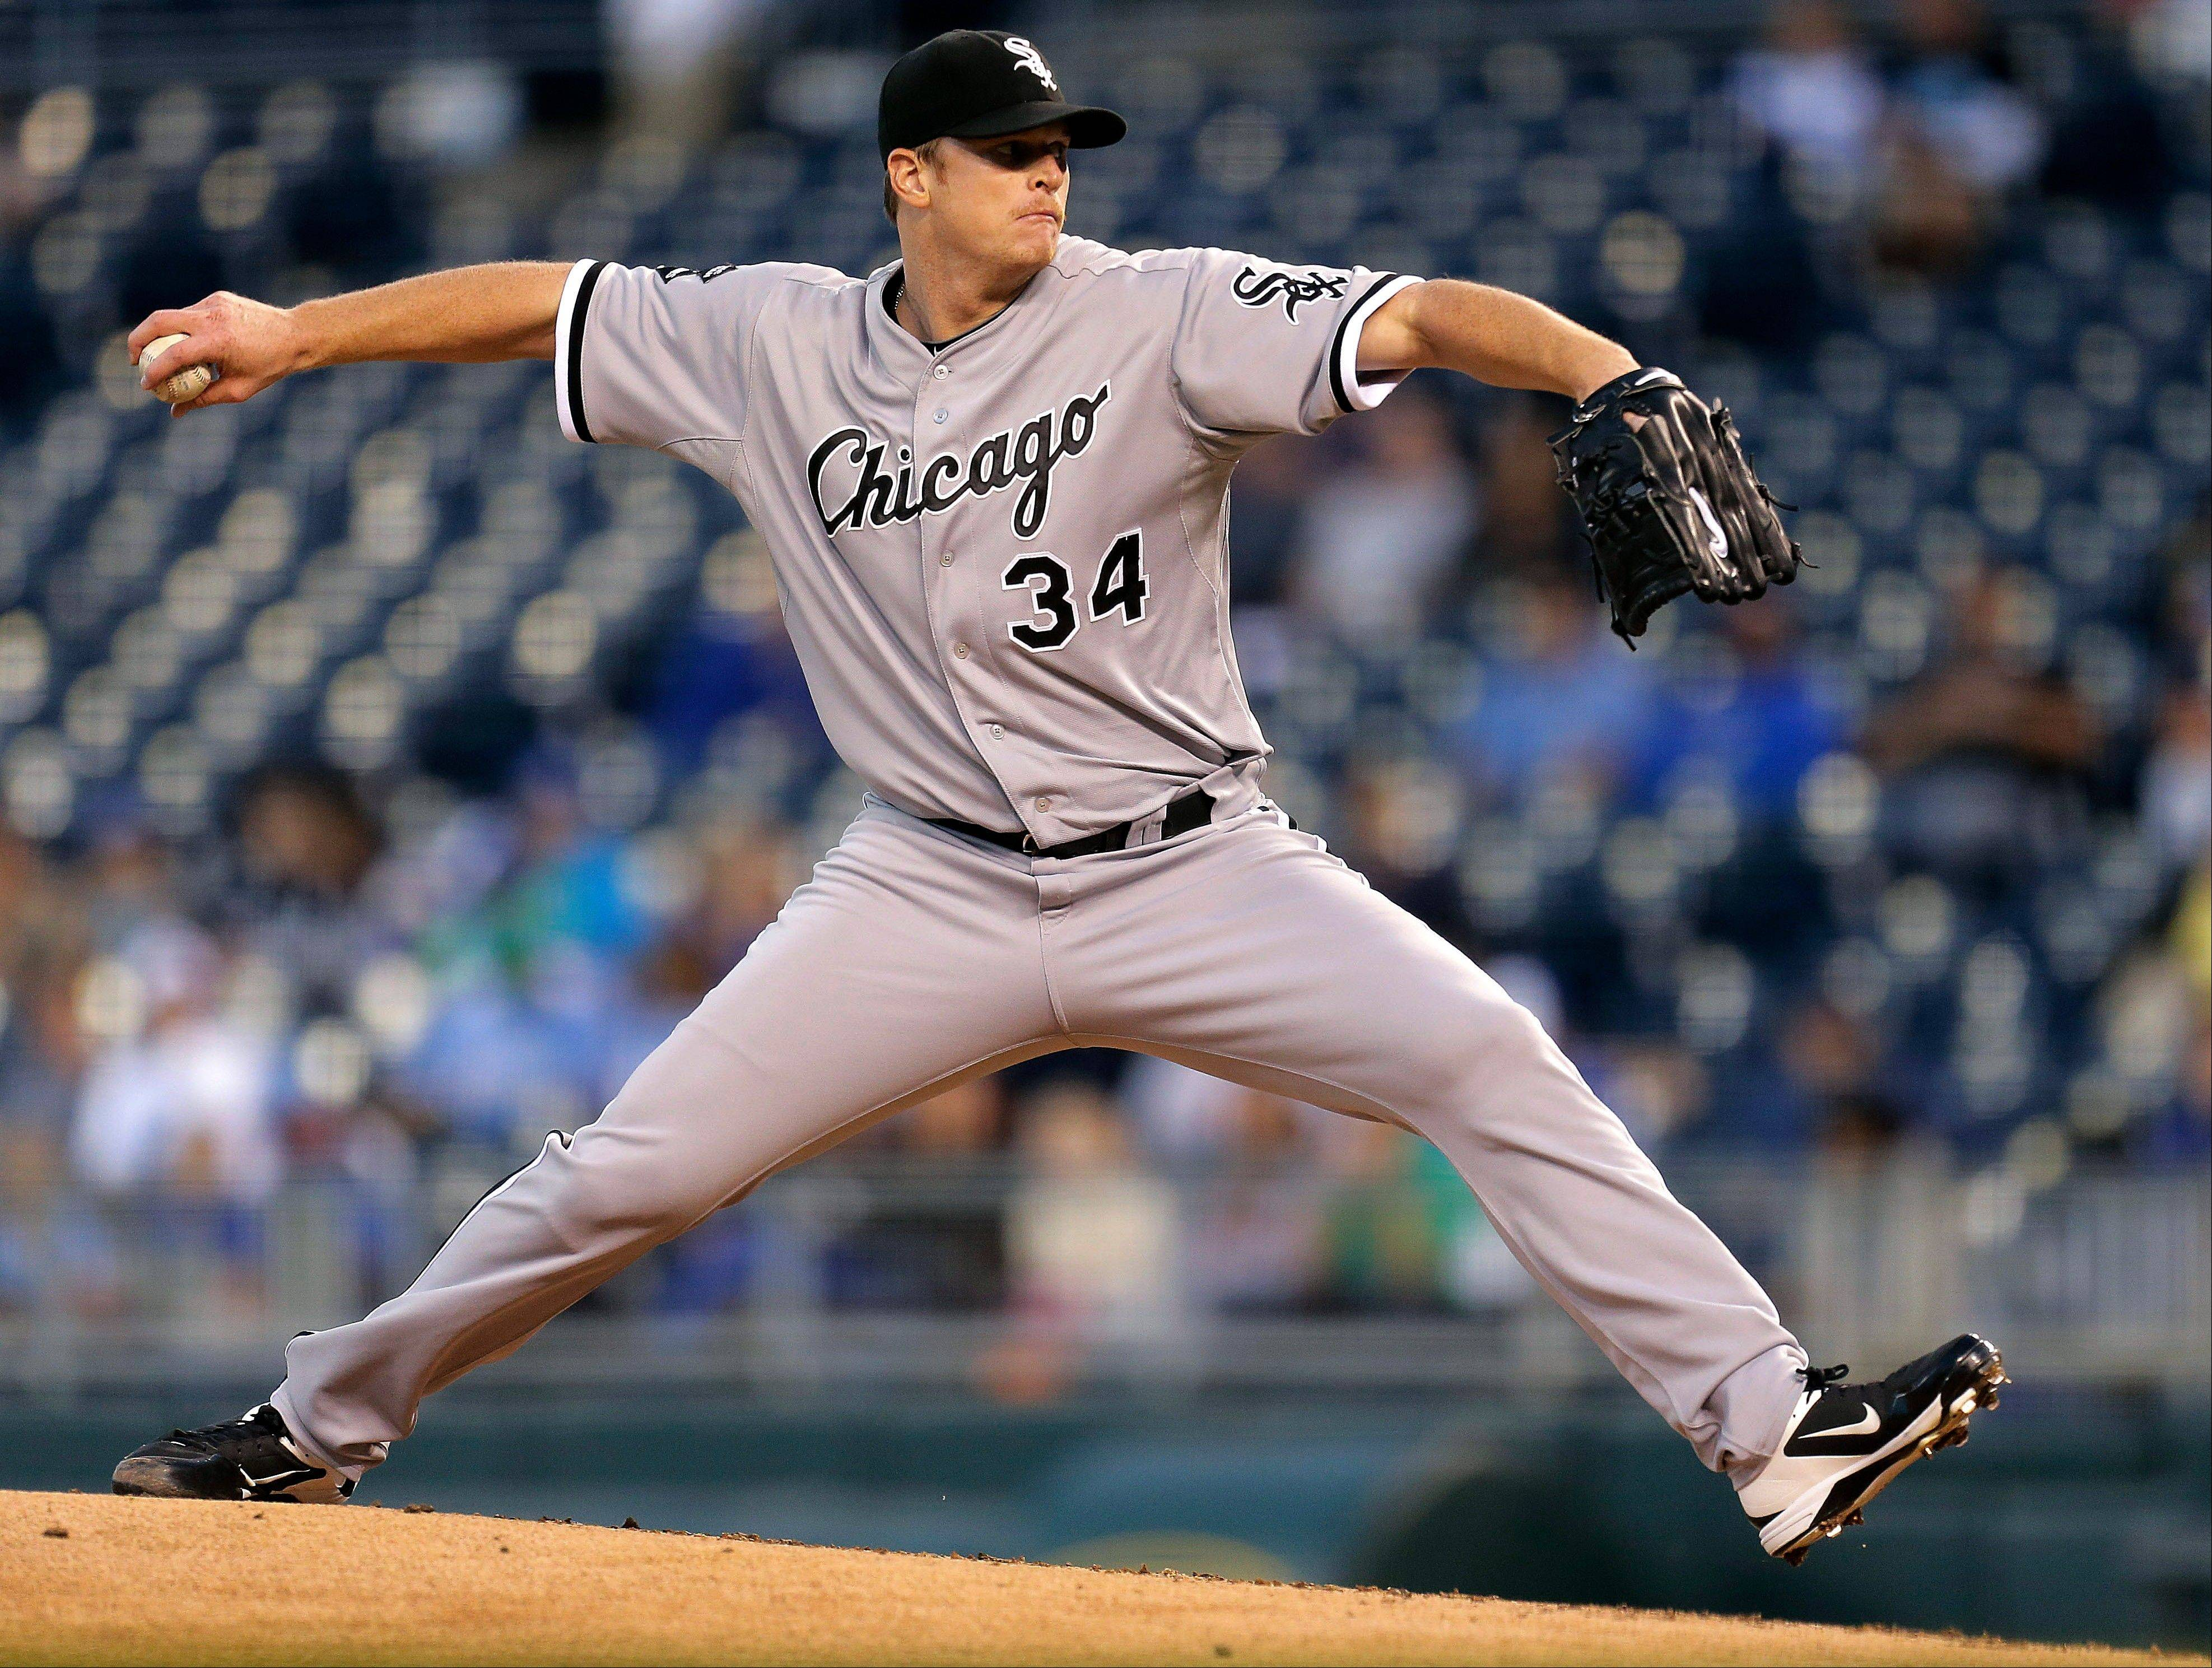 White Sox starting pitcher Gavin Floyd throws during the first inning of a baseball game against the Kansas City Royals, Tuesday, Sept. 18, 2012, in Kansas City, Mo.